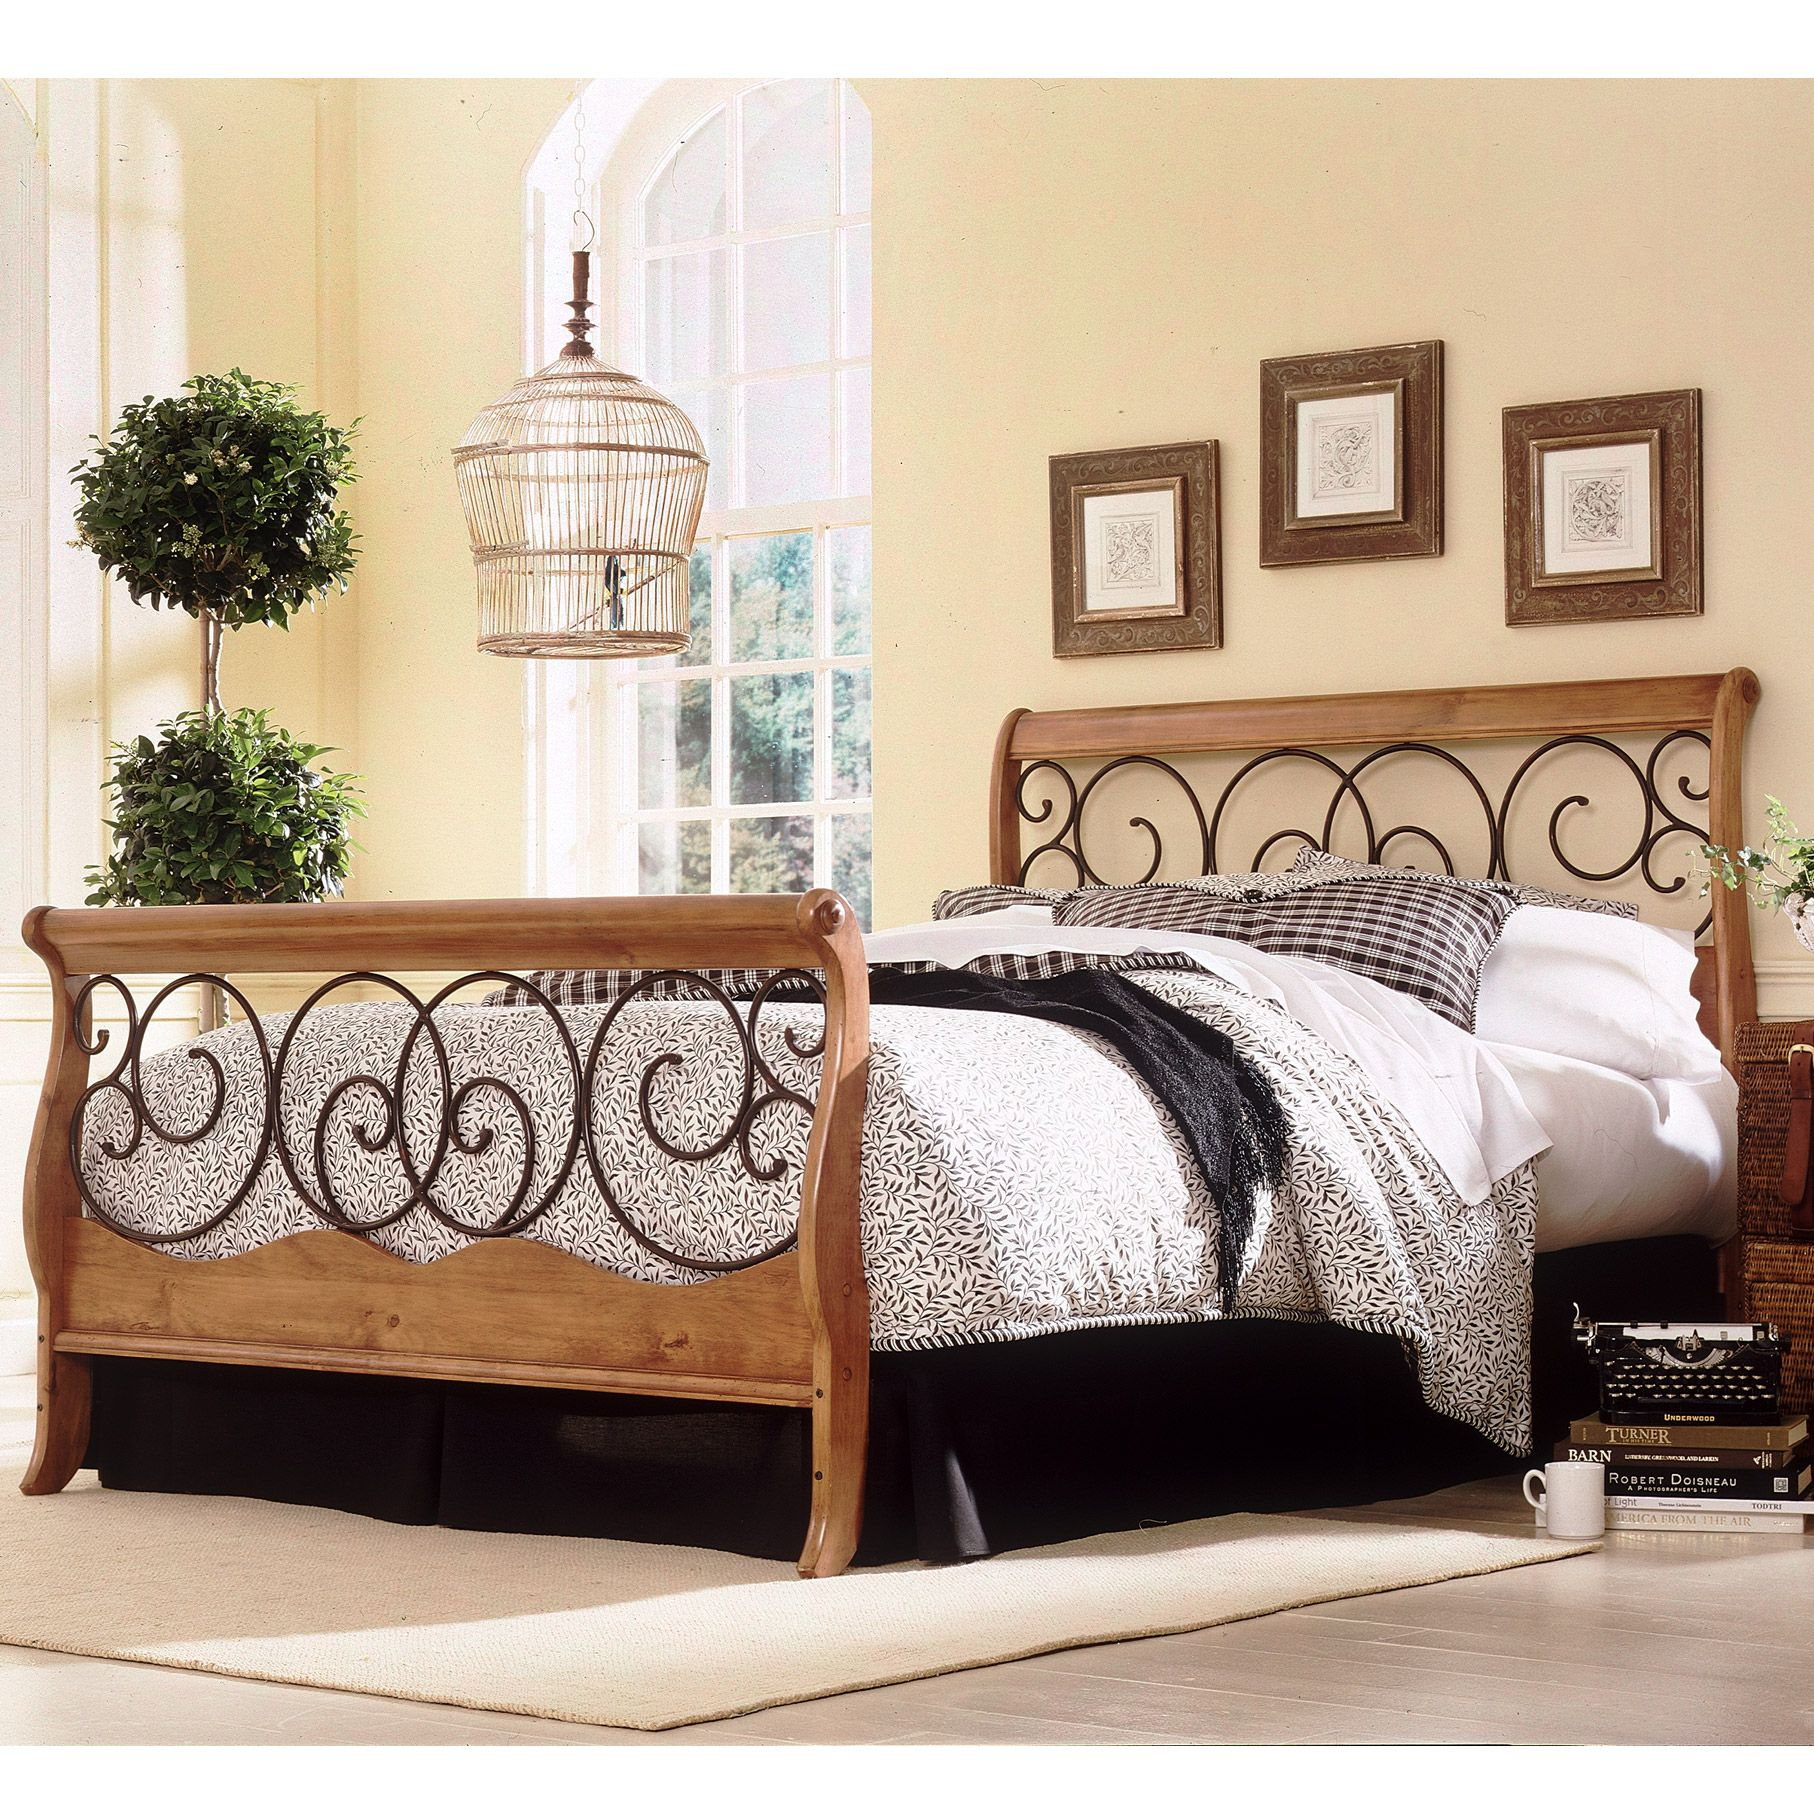 Dunhill Wood And Iron Bed Autumn Brown Honey Oak Finish Bed Styling Wood Sleigh Bed Iron Headboard